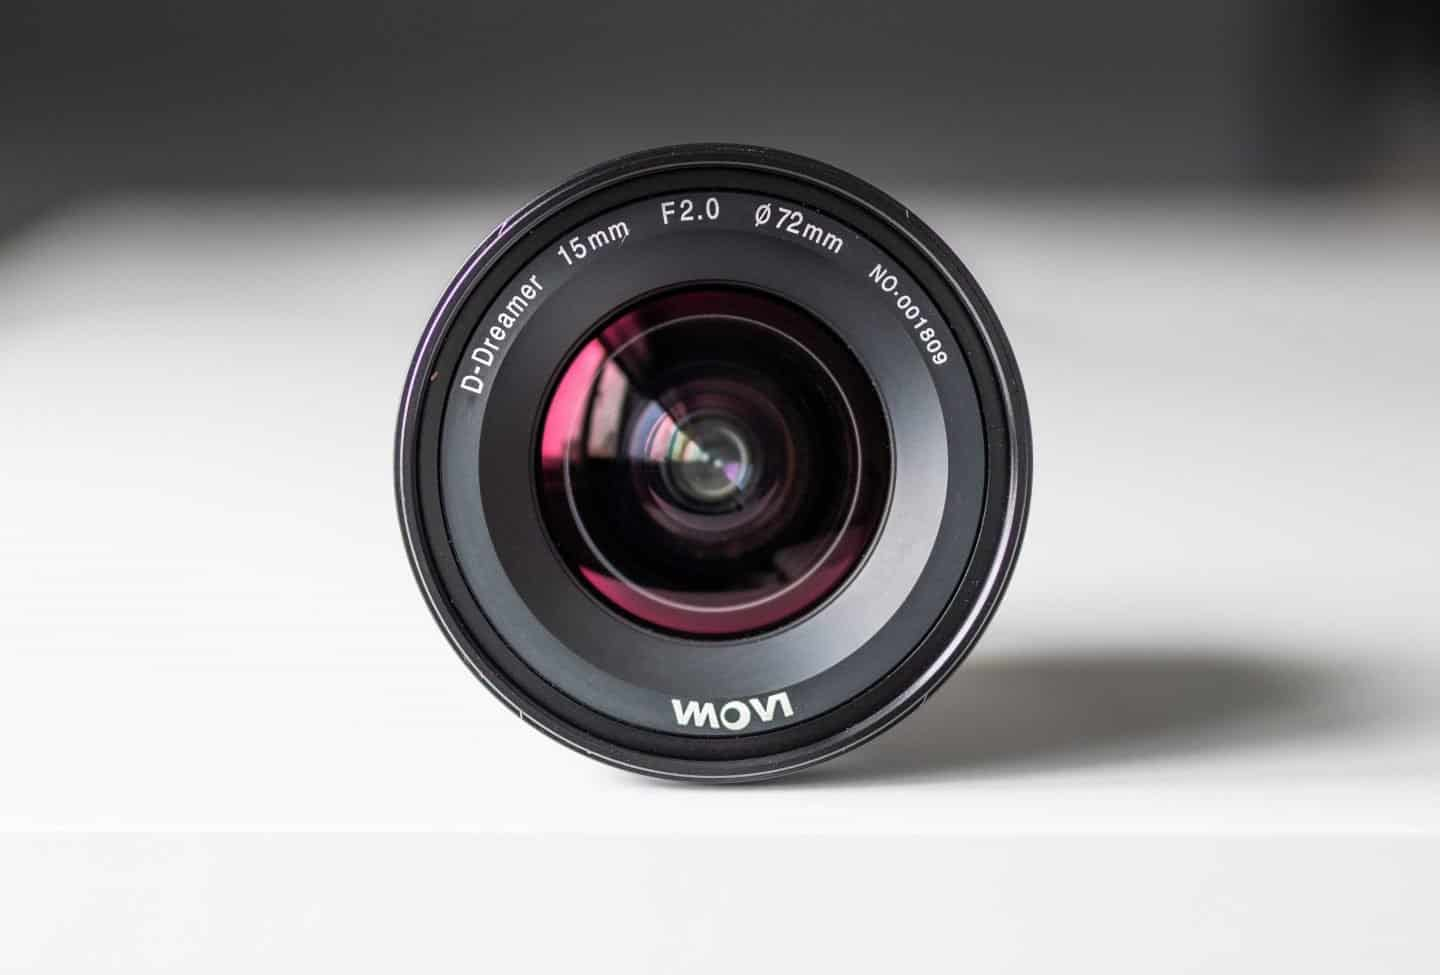 This 15mm F2 wide angle lens was used for a lot of night photography in Grand Canyon.